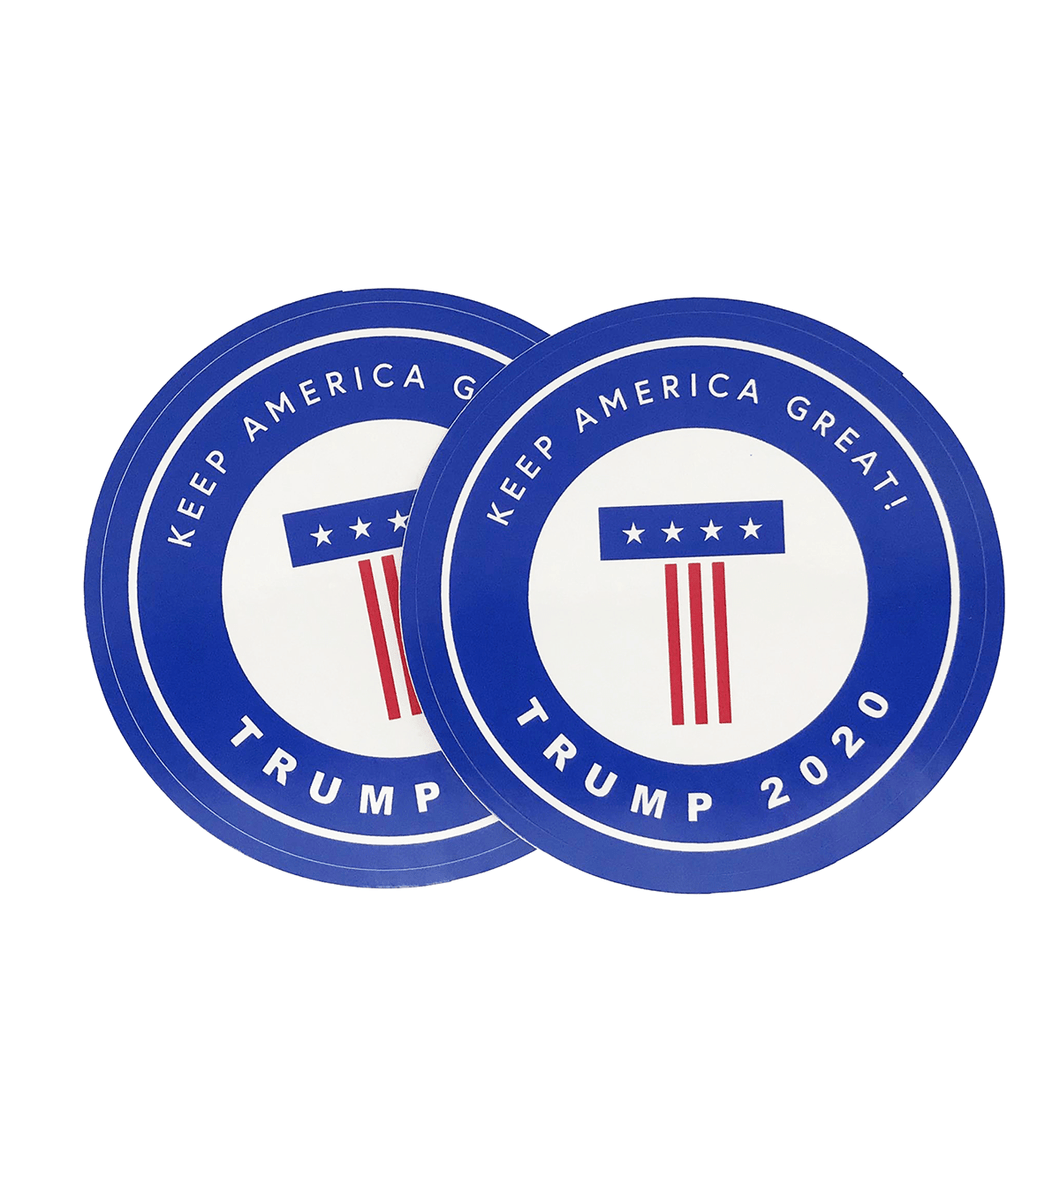 Keep America Great 2020 Sticker Decal 2-Pack